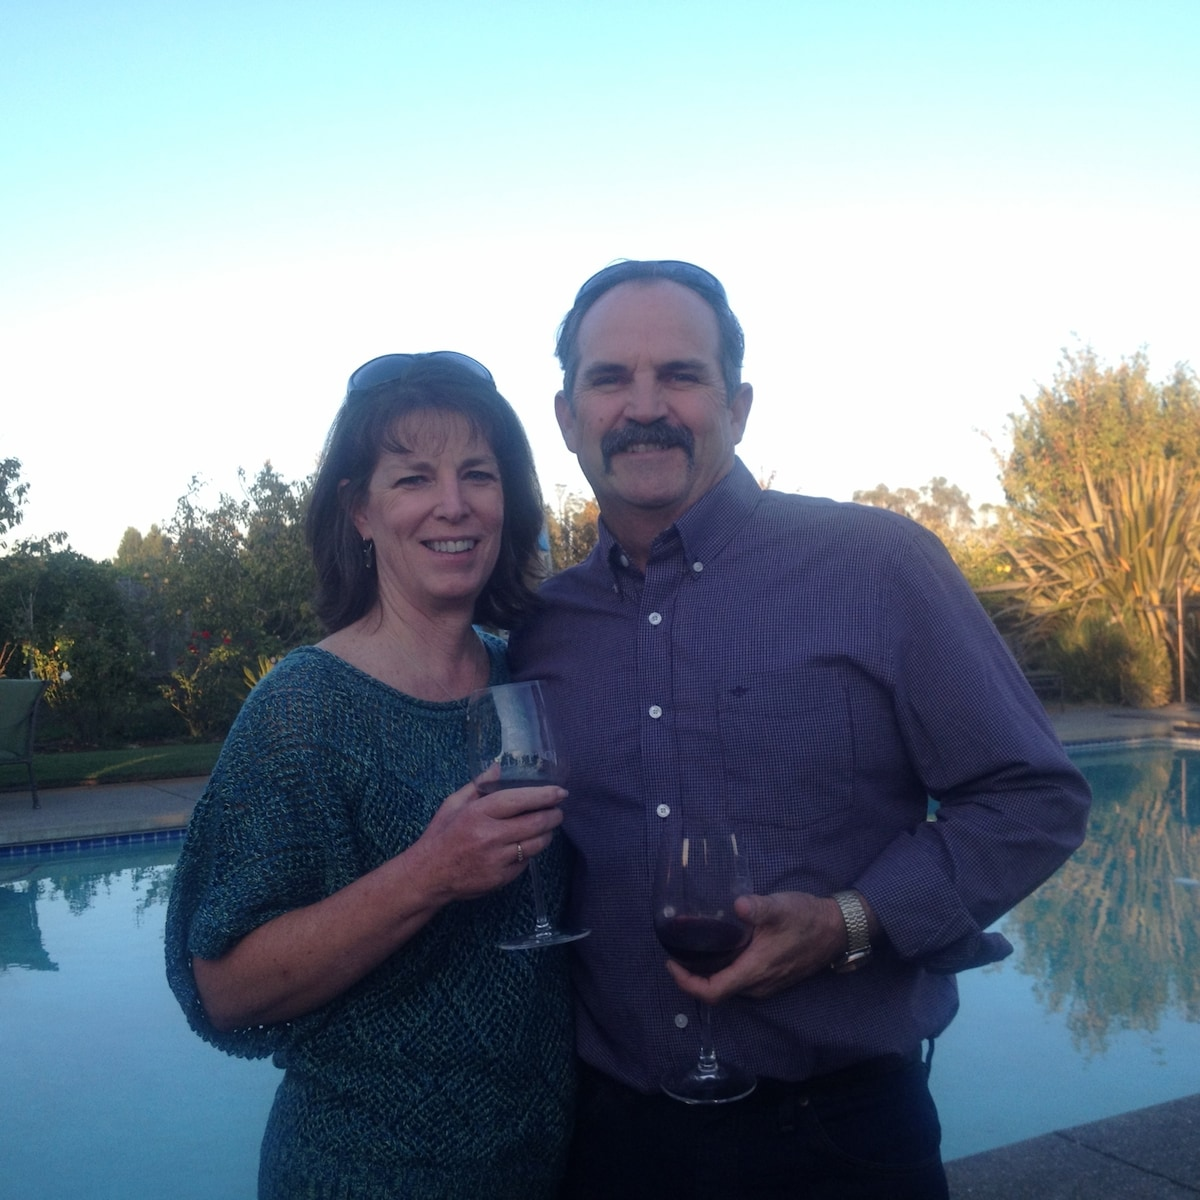 Kathy And Mike from Sebastopol